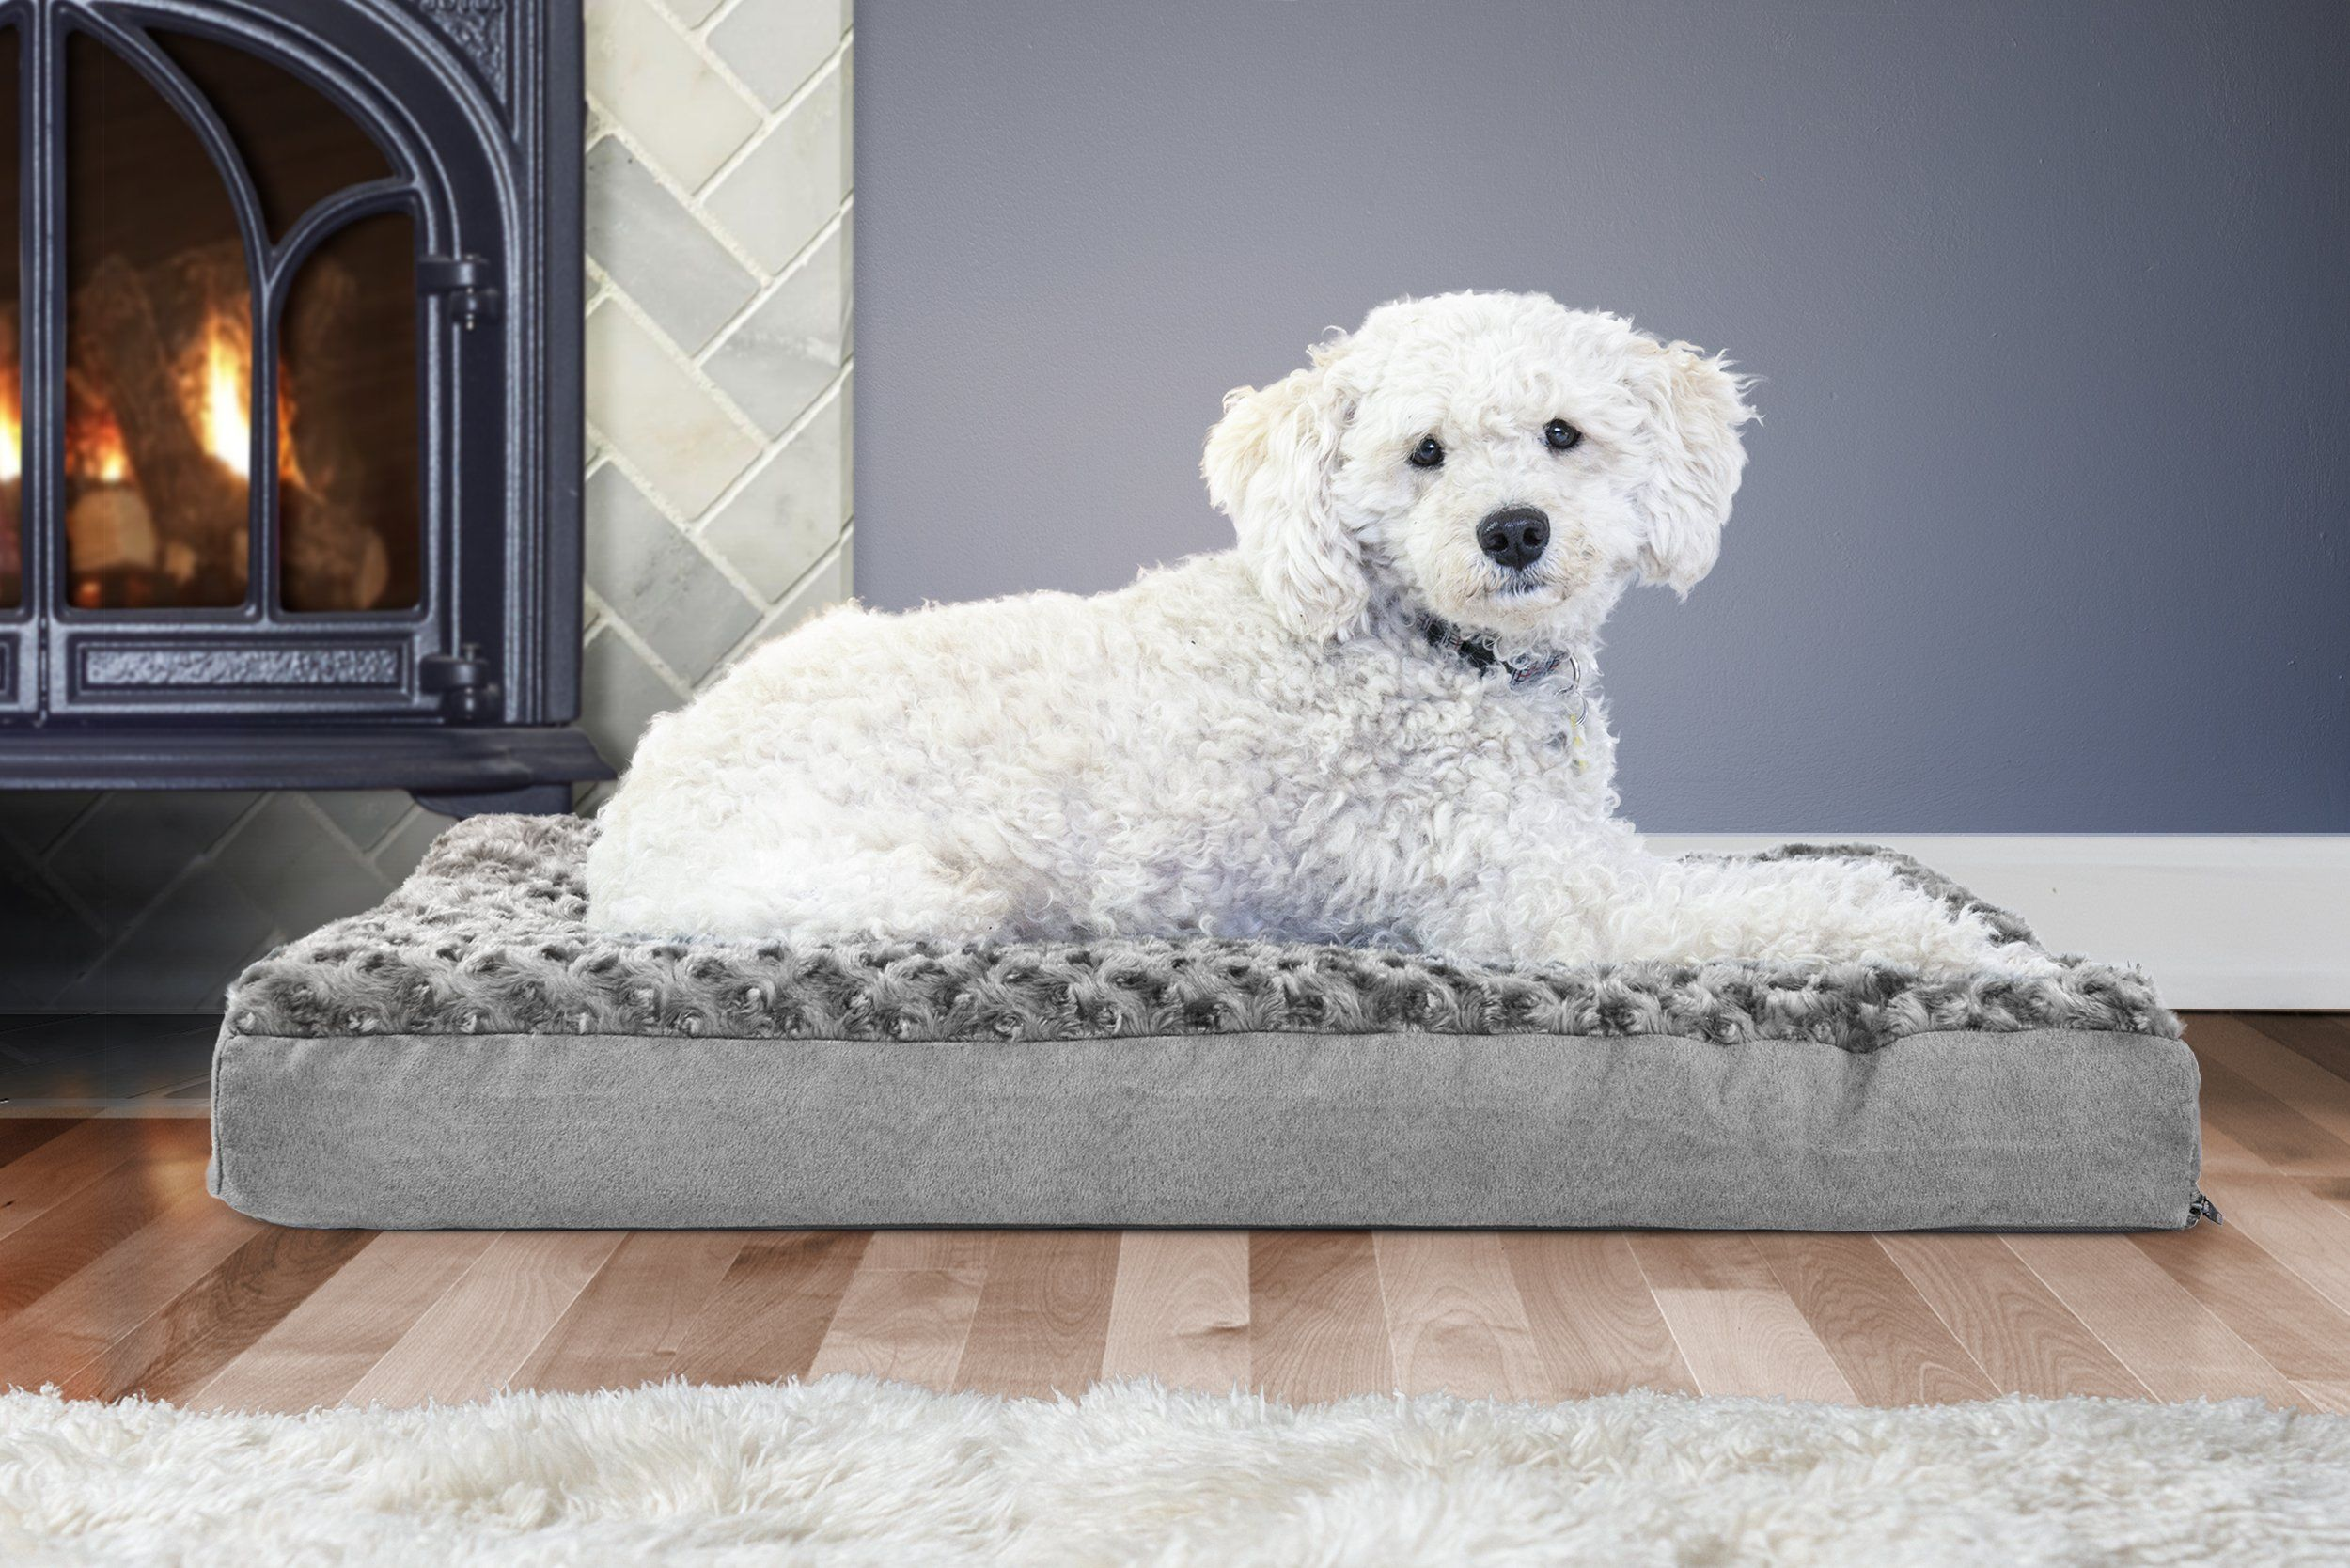 FurHaven Deluxe Orthopedic Pet Bed Mattress for Dogs and